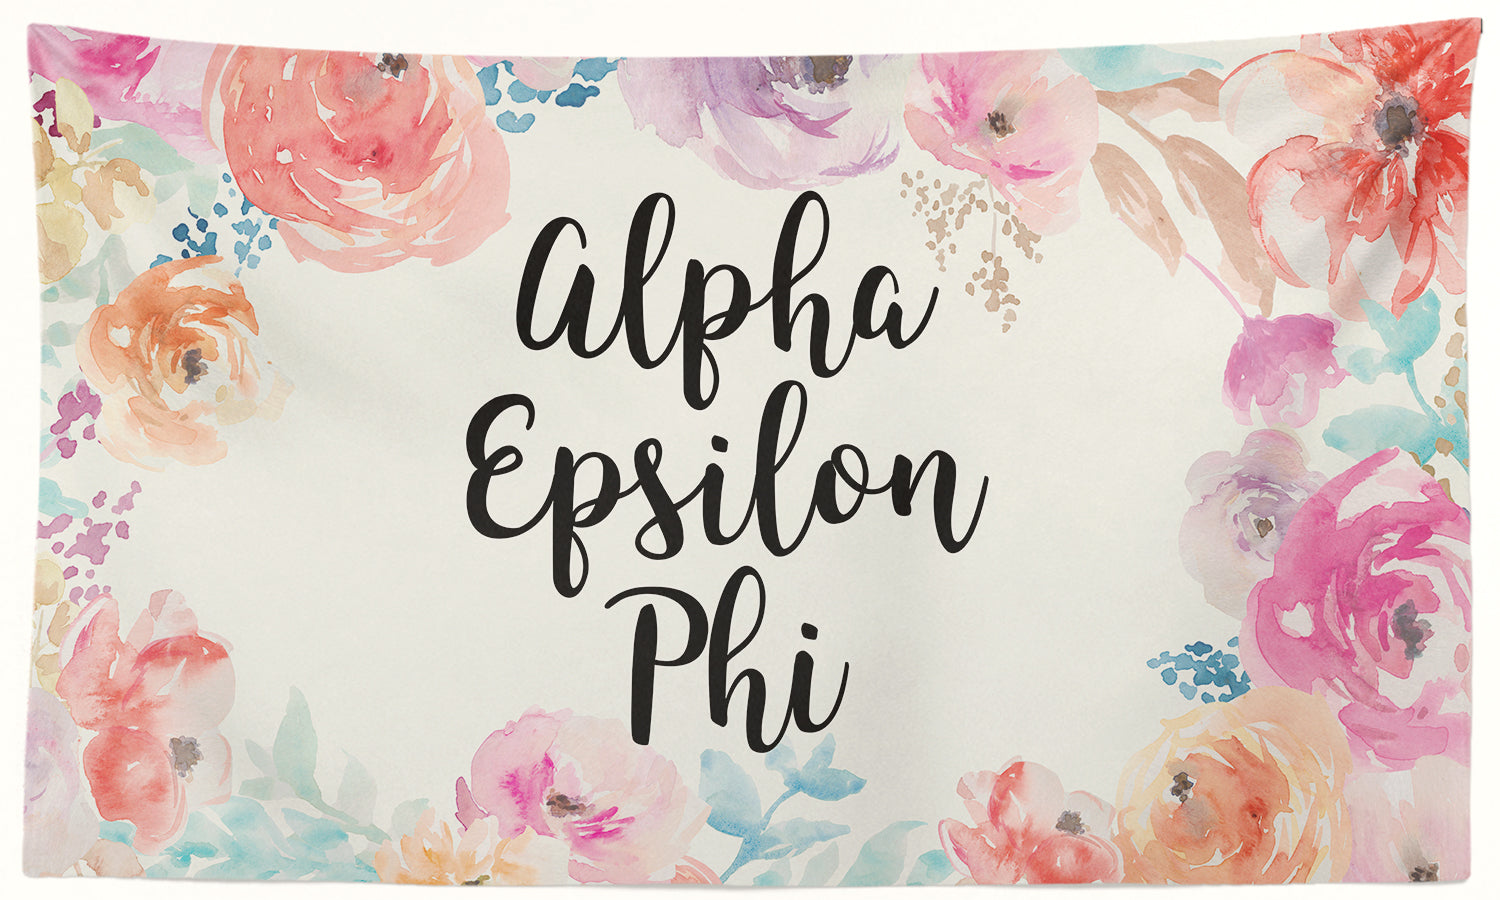 Alpha Epsilon Phi - New Floral - 3' x 5' Flag